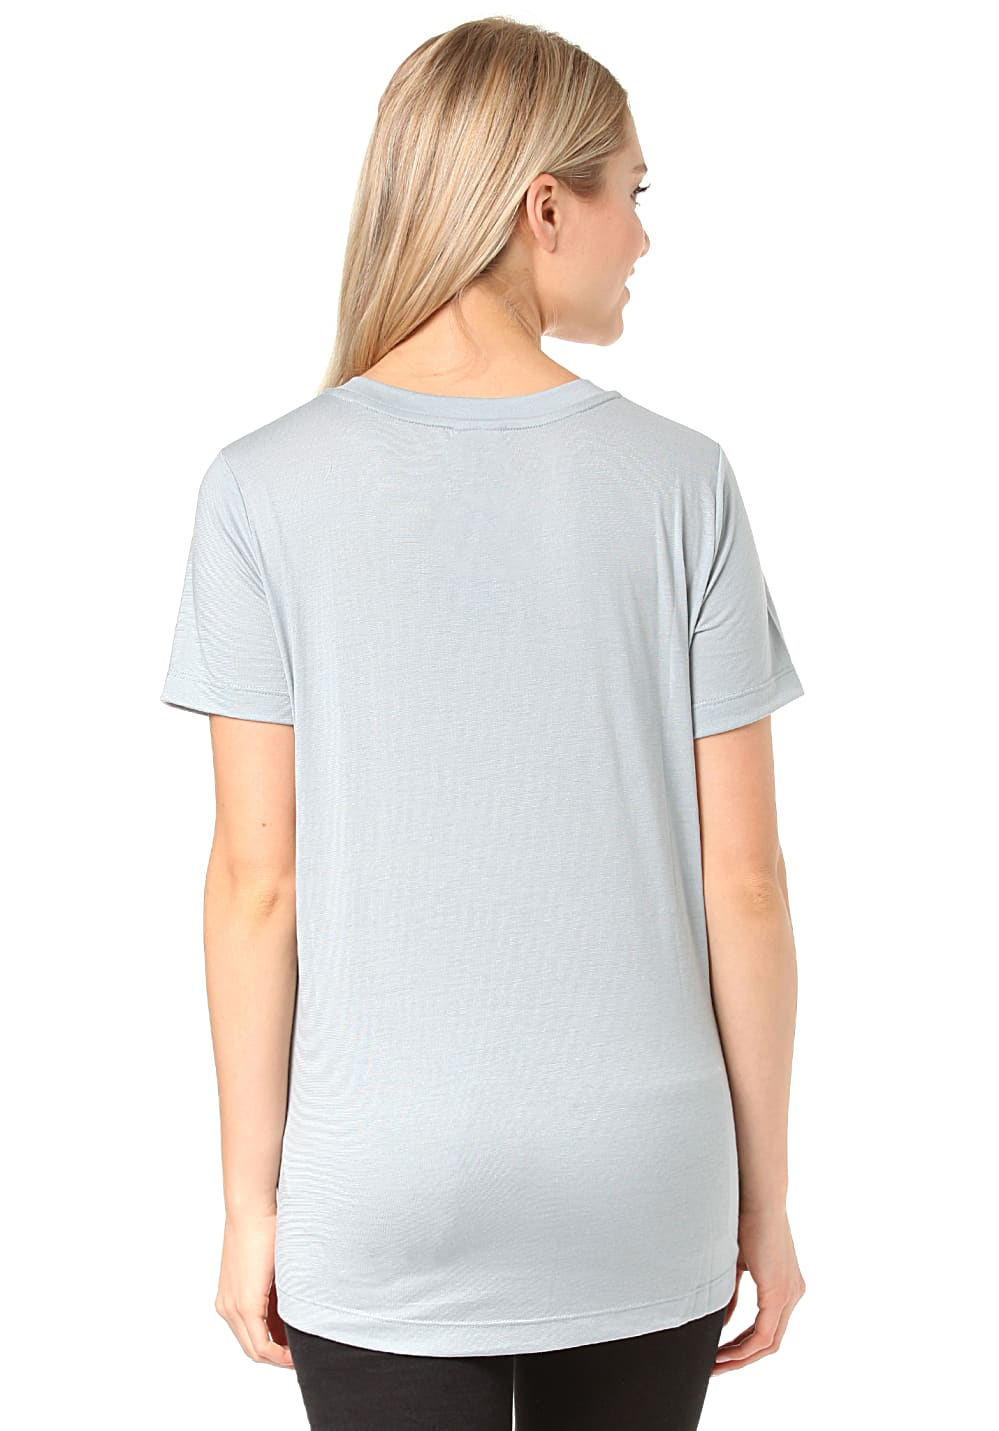 4445444396 ... Thermal Tops · NIKE SPORTSWEAR Essential Hbr - T-Shirt for Women -  Blue. Back to Overview. 1  2. Previous